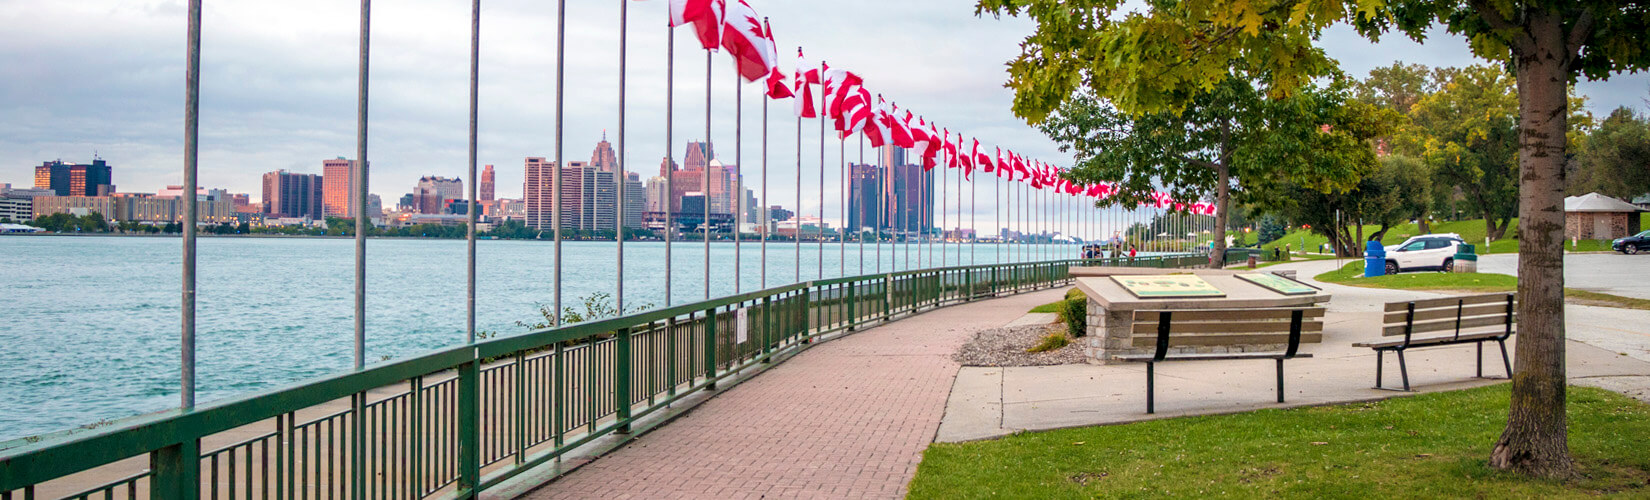 Incredibly Fun Things to Do in Windsor Ontario & Essex County :: I've Been Bit! Travel Blog